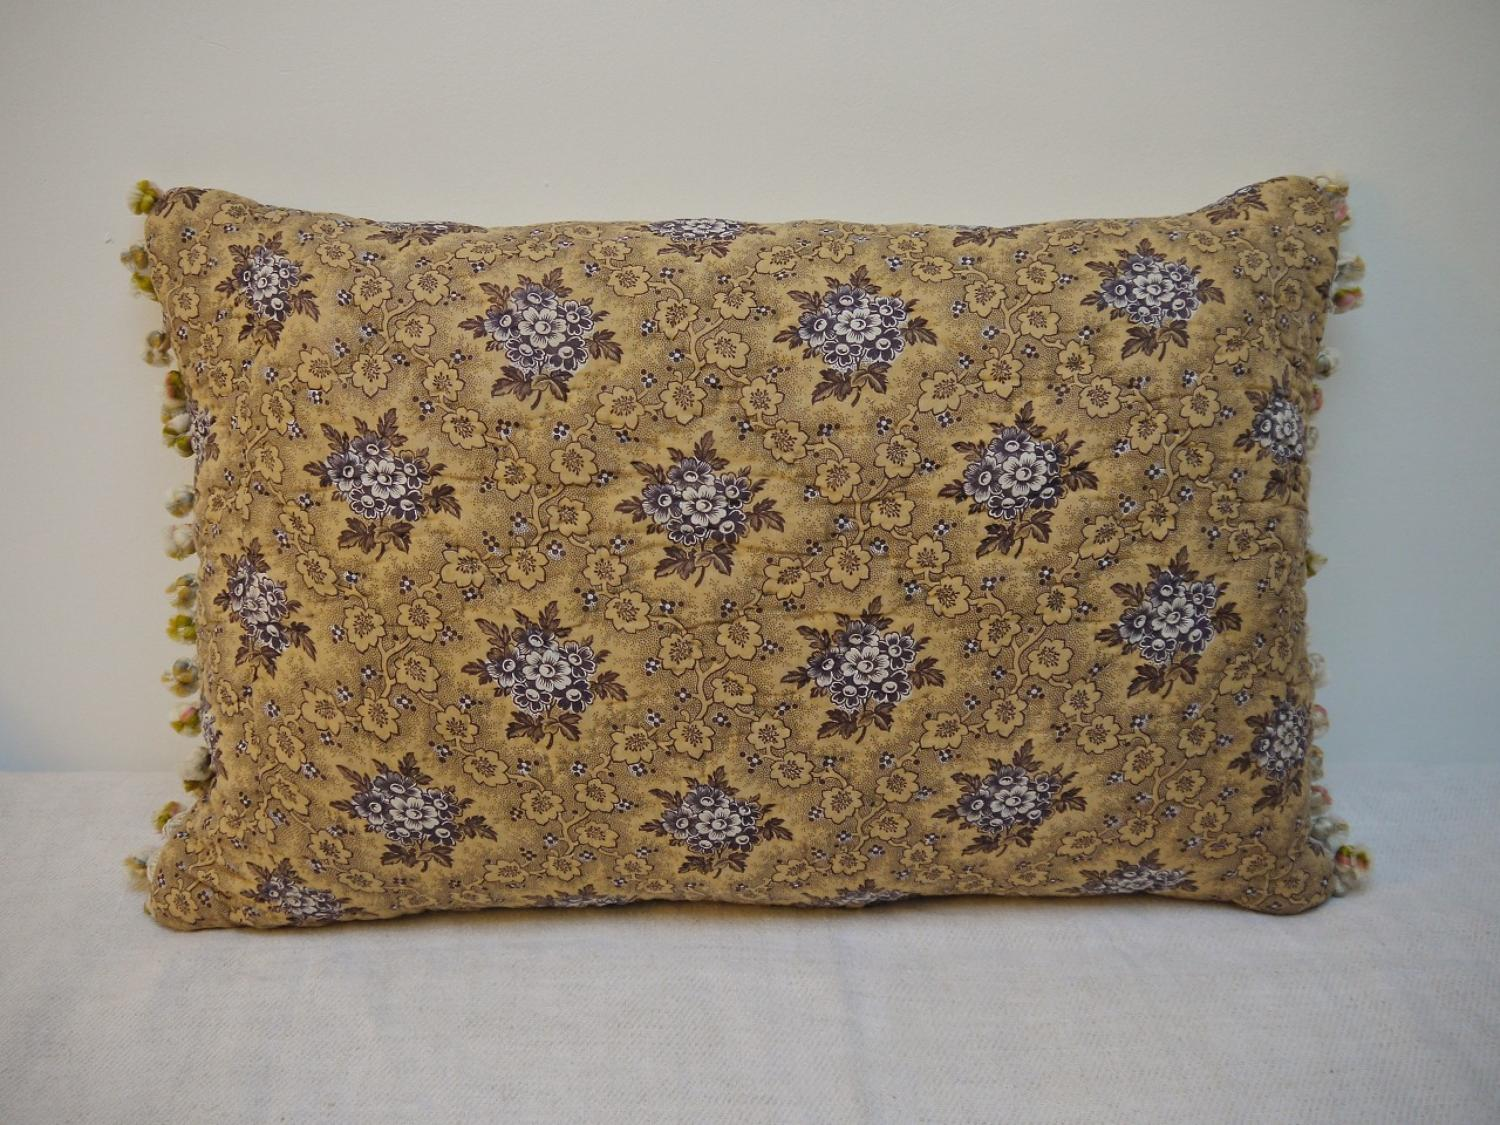 19th centruy French Purple Floral Cushion